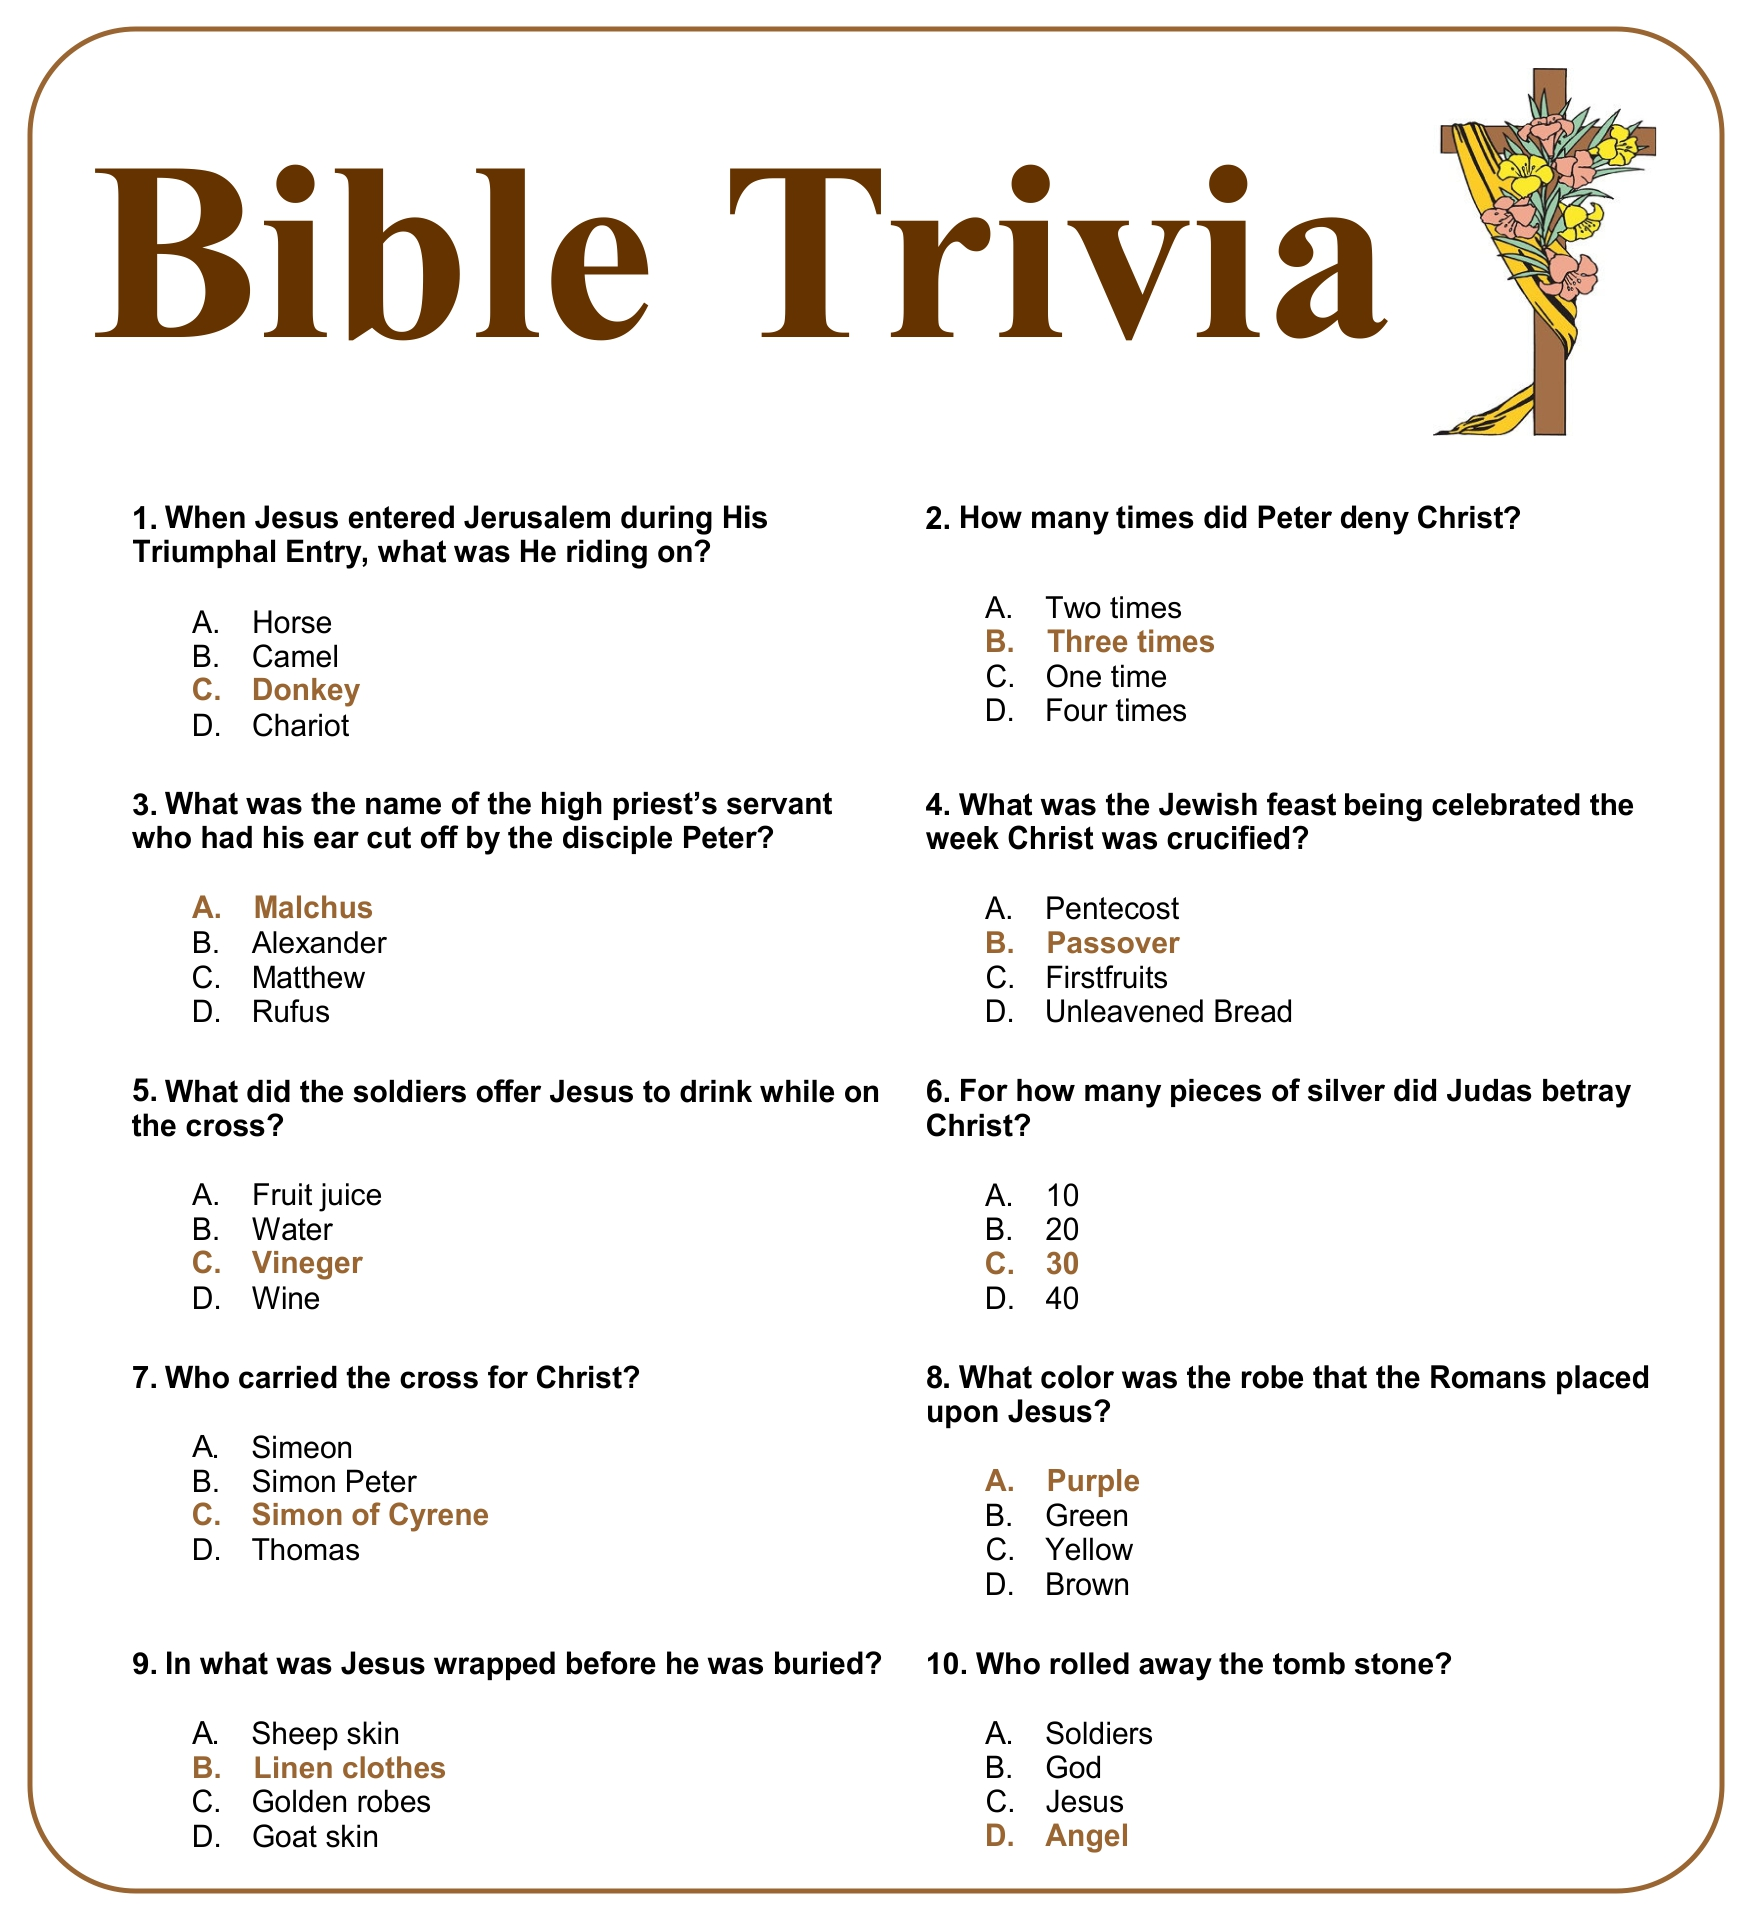 Christian Christmas Trivia Questions and Answers